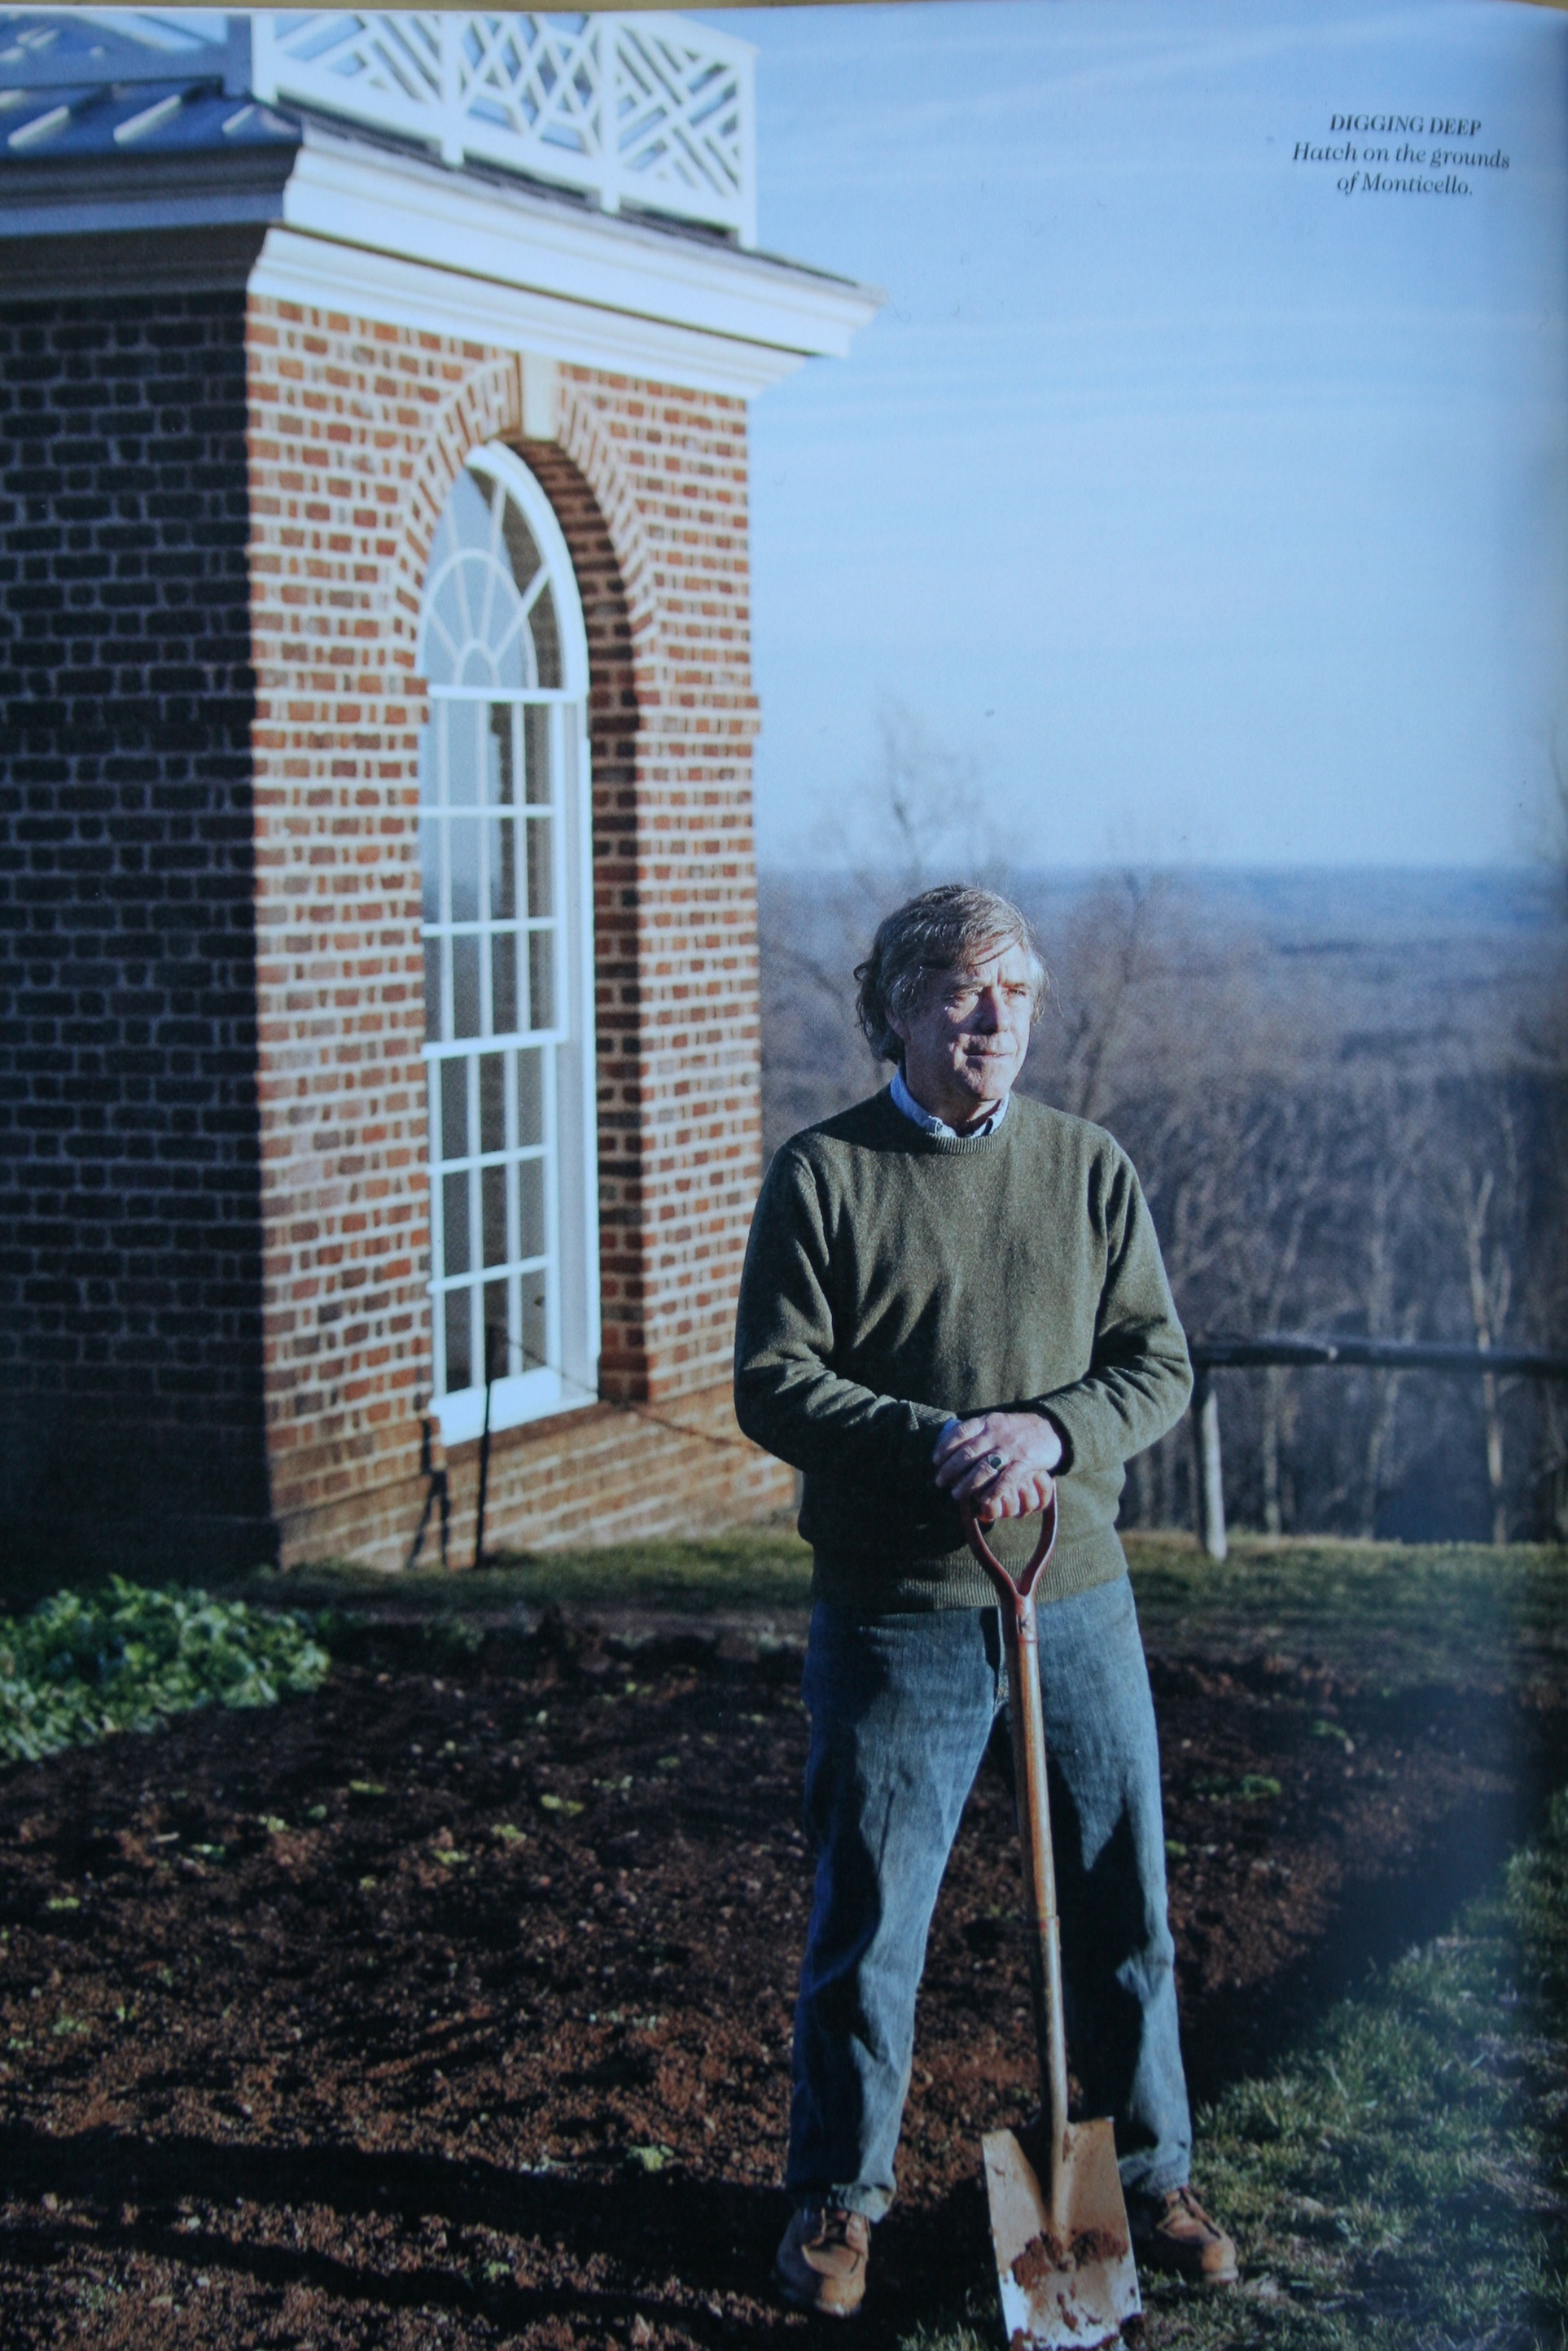 """Peter Hatch in Monticello garden. From  Garden and Gun  Magazine, """"Southern Heroes, 11 Visionaries Saving the South's Wild Places,"""" April/May, 2012"""